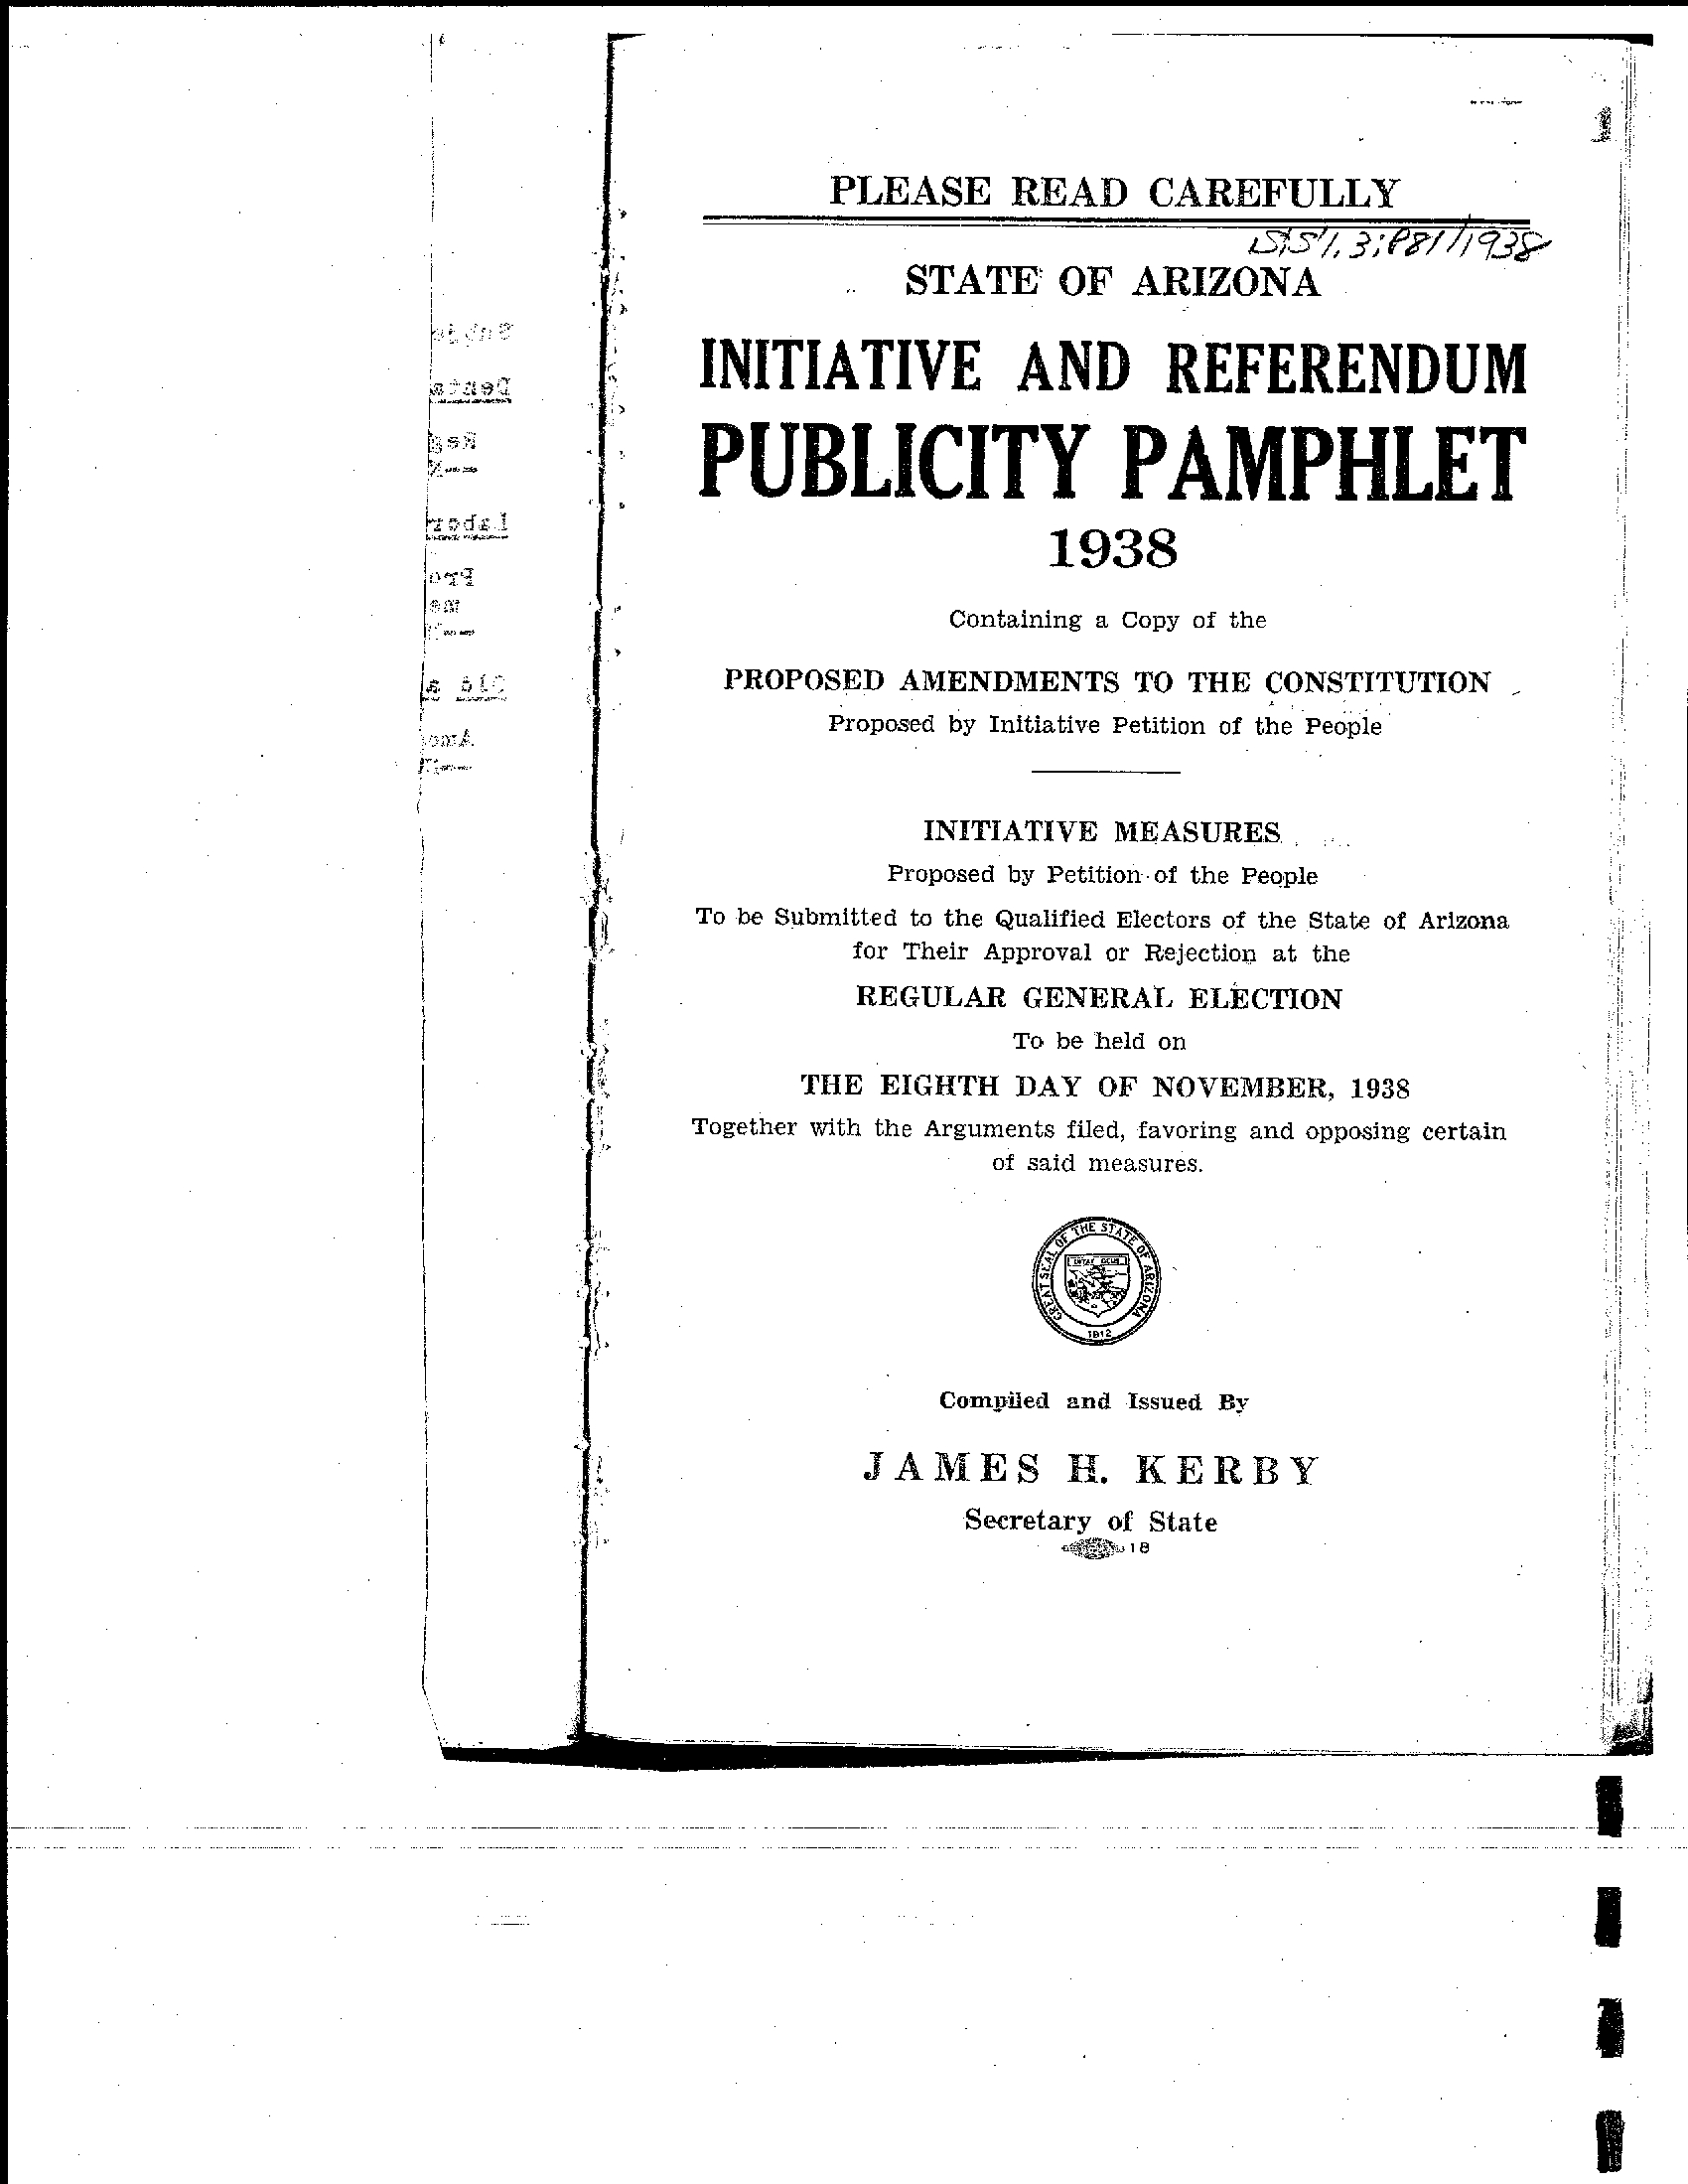 Publicity Pamphlet Regular General Election November, 1938 for Reese A Calendar Year Taxpayer